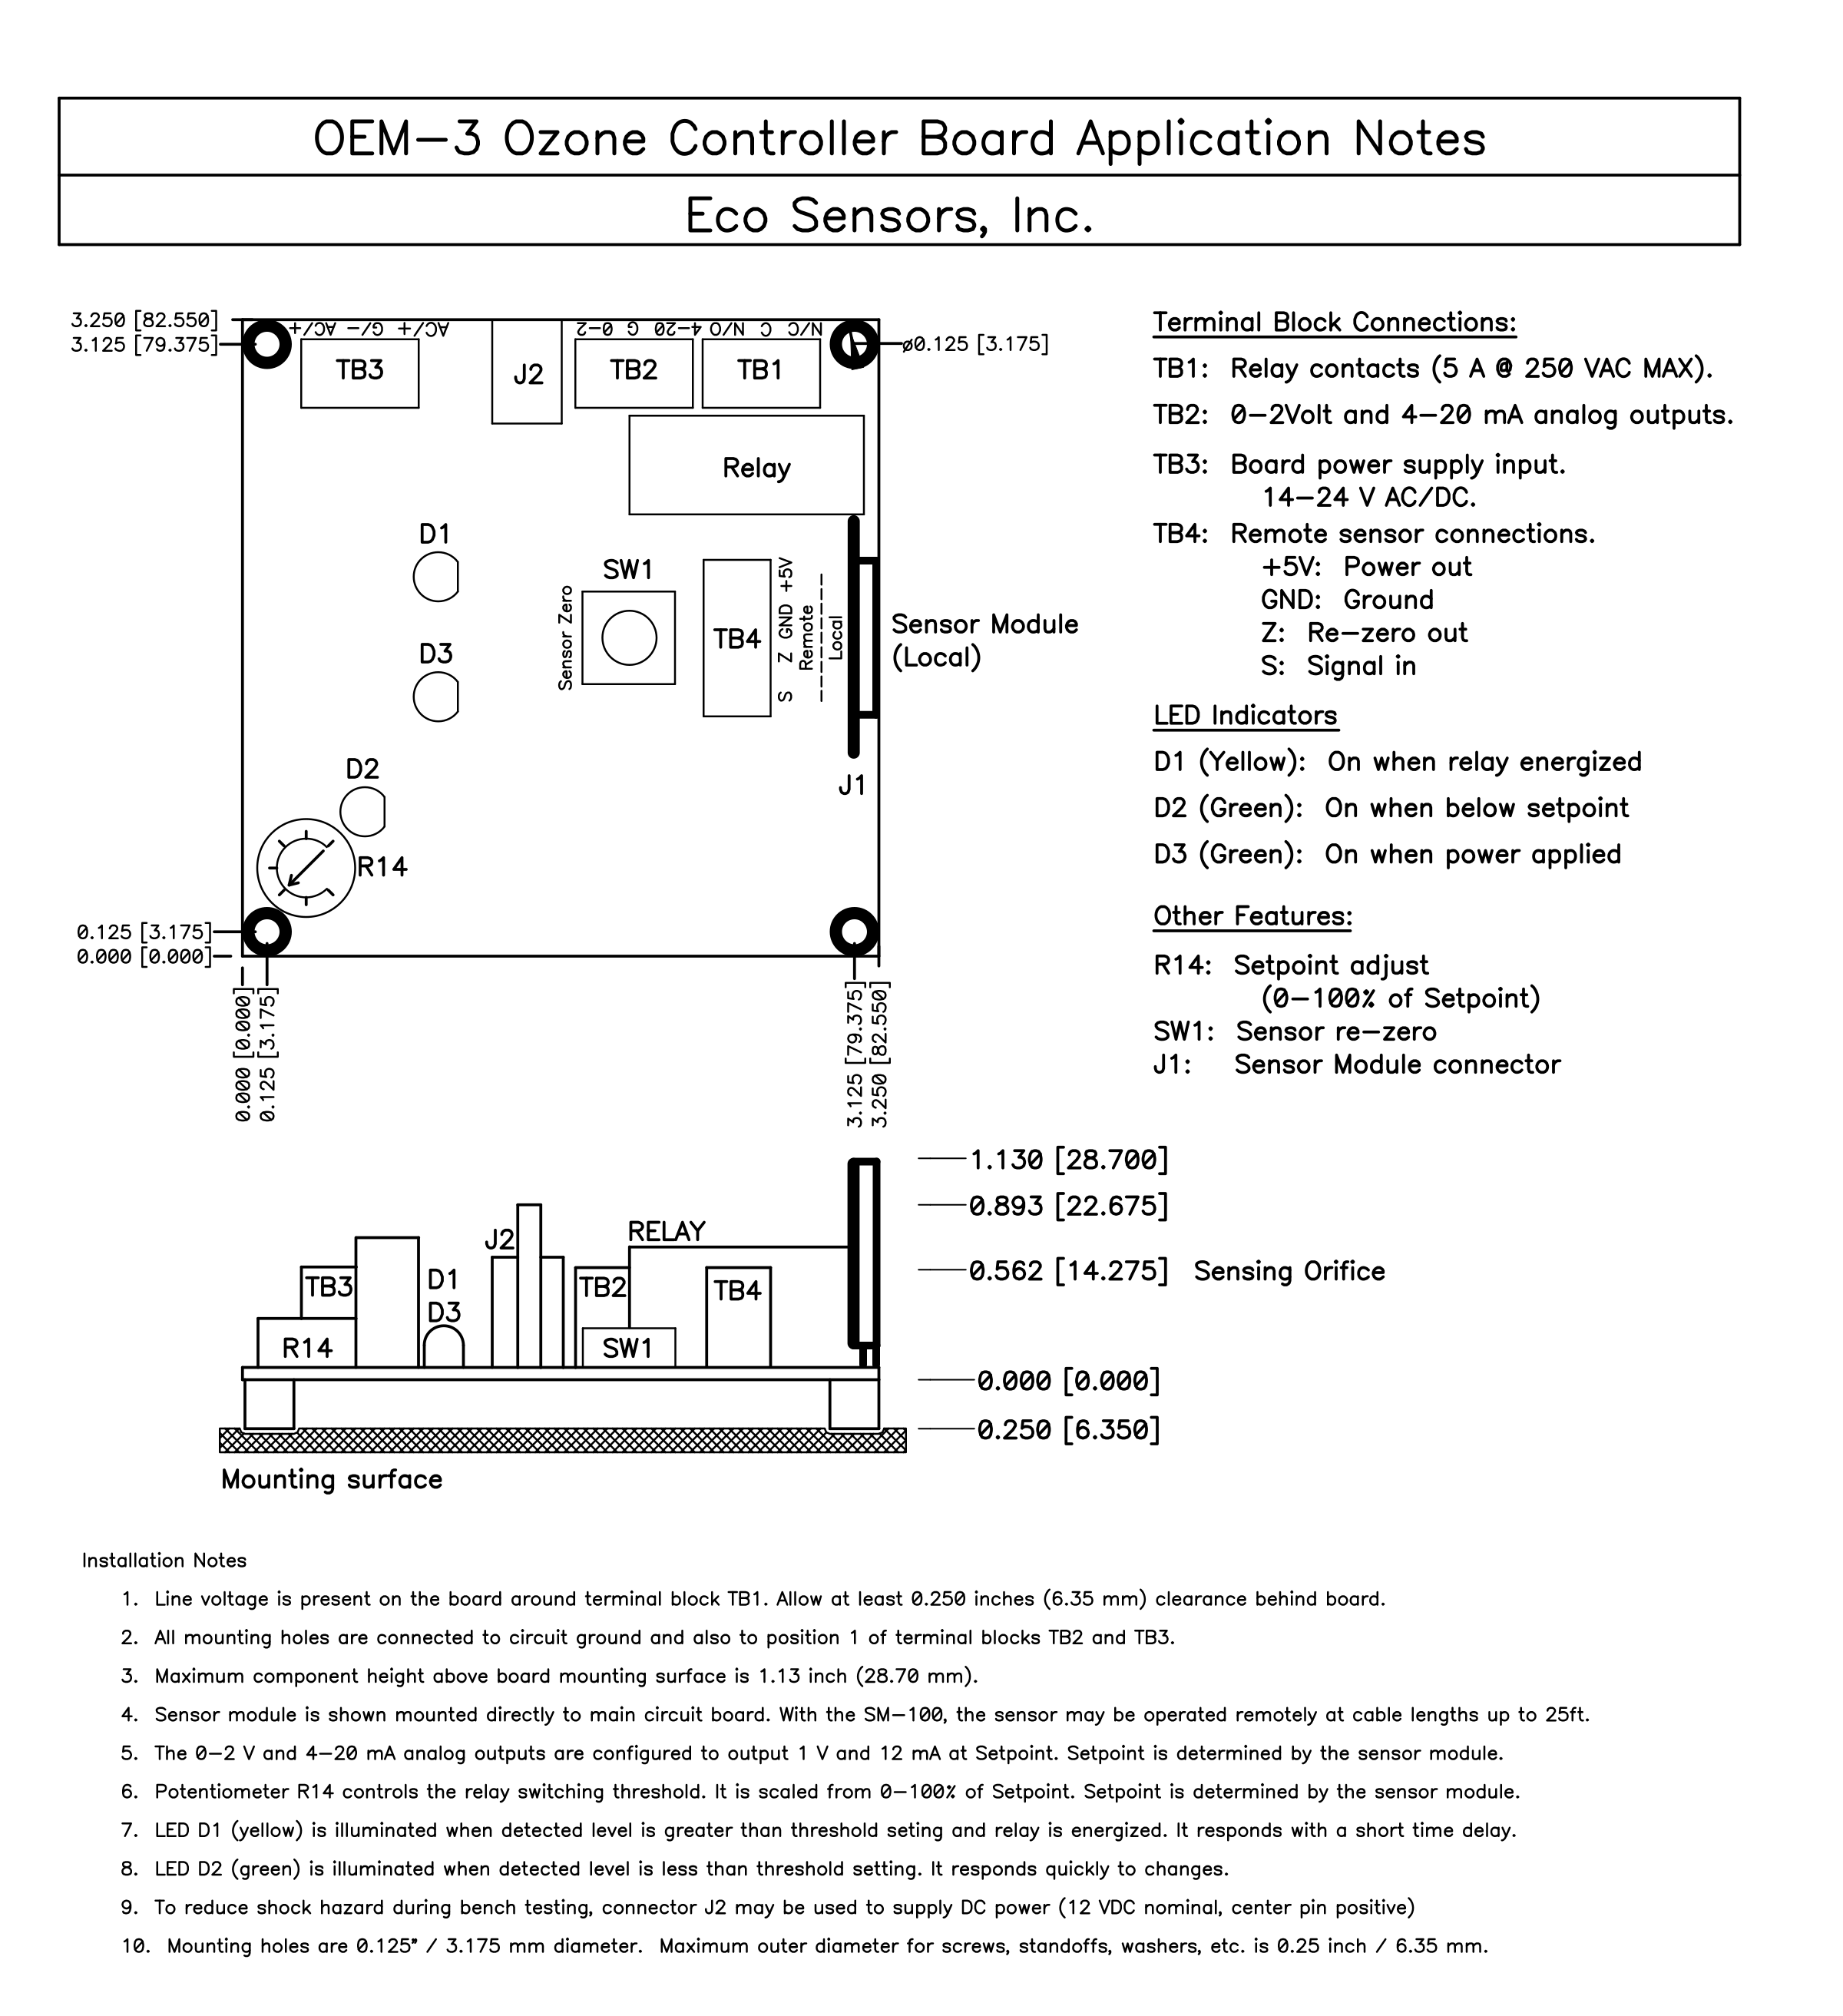 OEM-3 Ozone Controller Board Drawing and Indicator Information